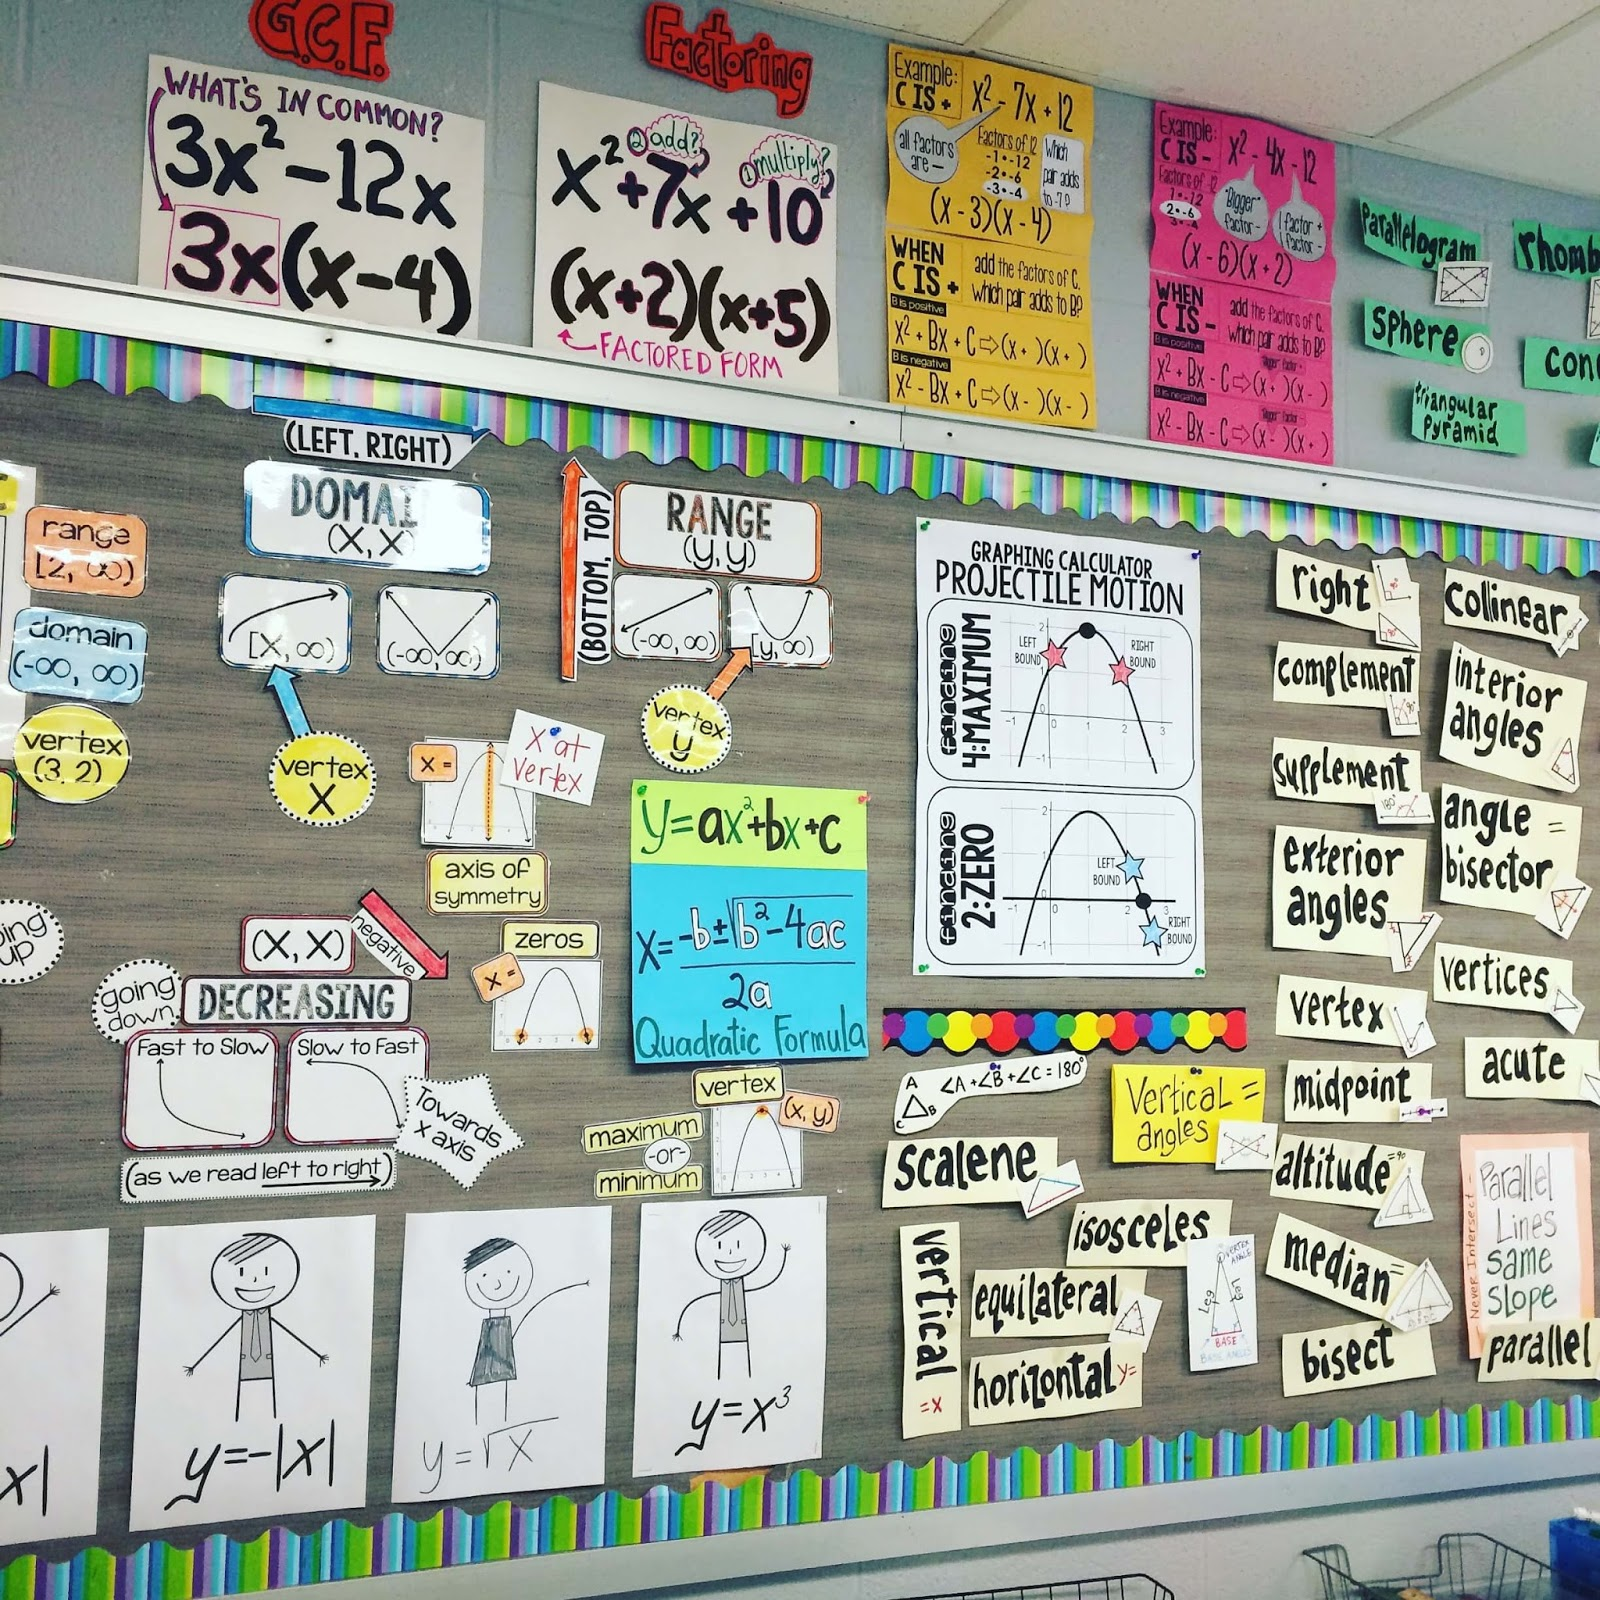 Classroom Word Wall Ideas ~ Scaffolded math and science high school word wall ideas